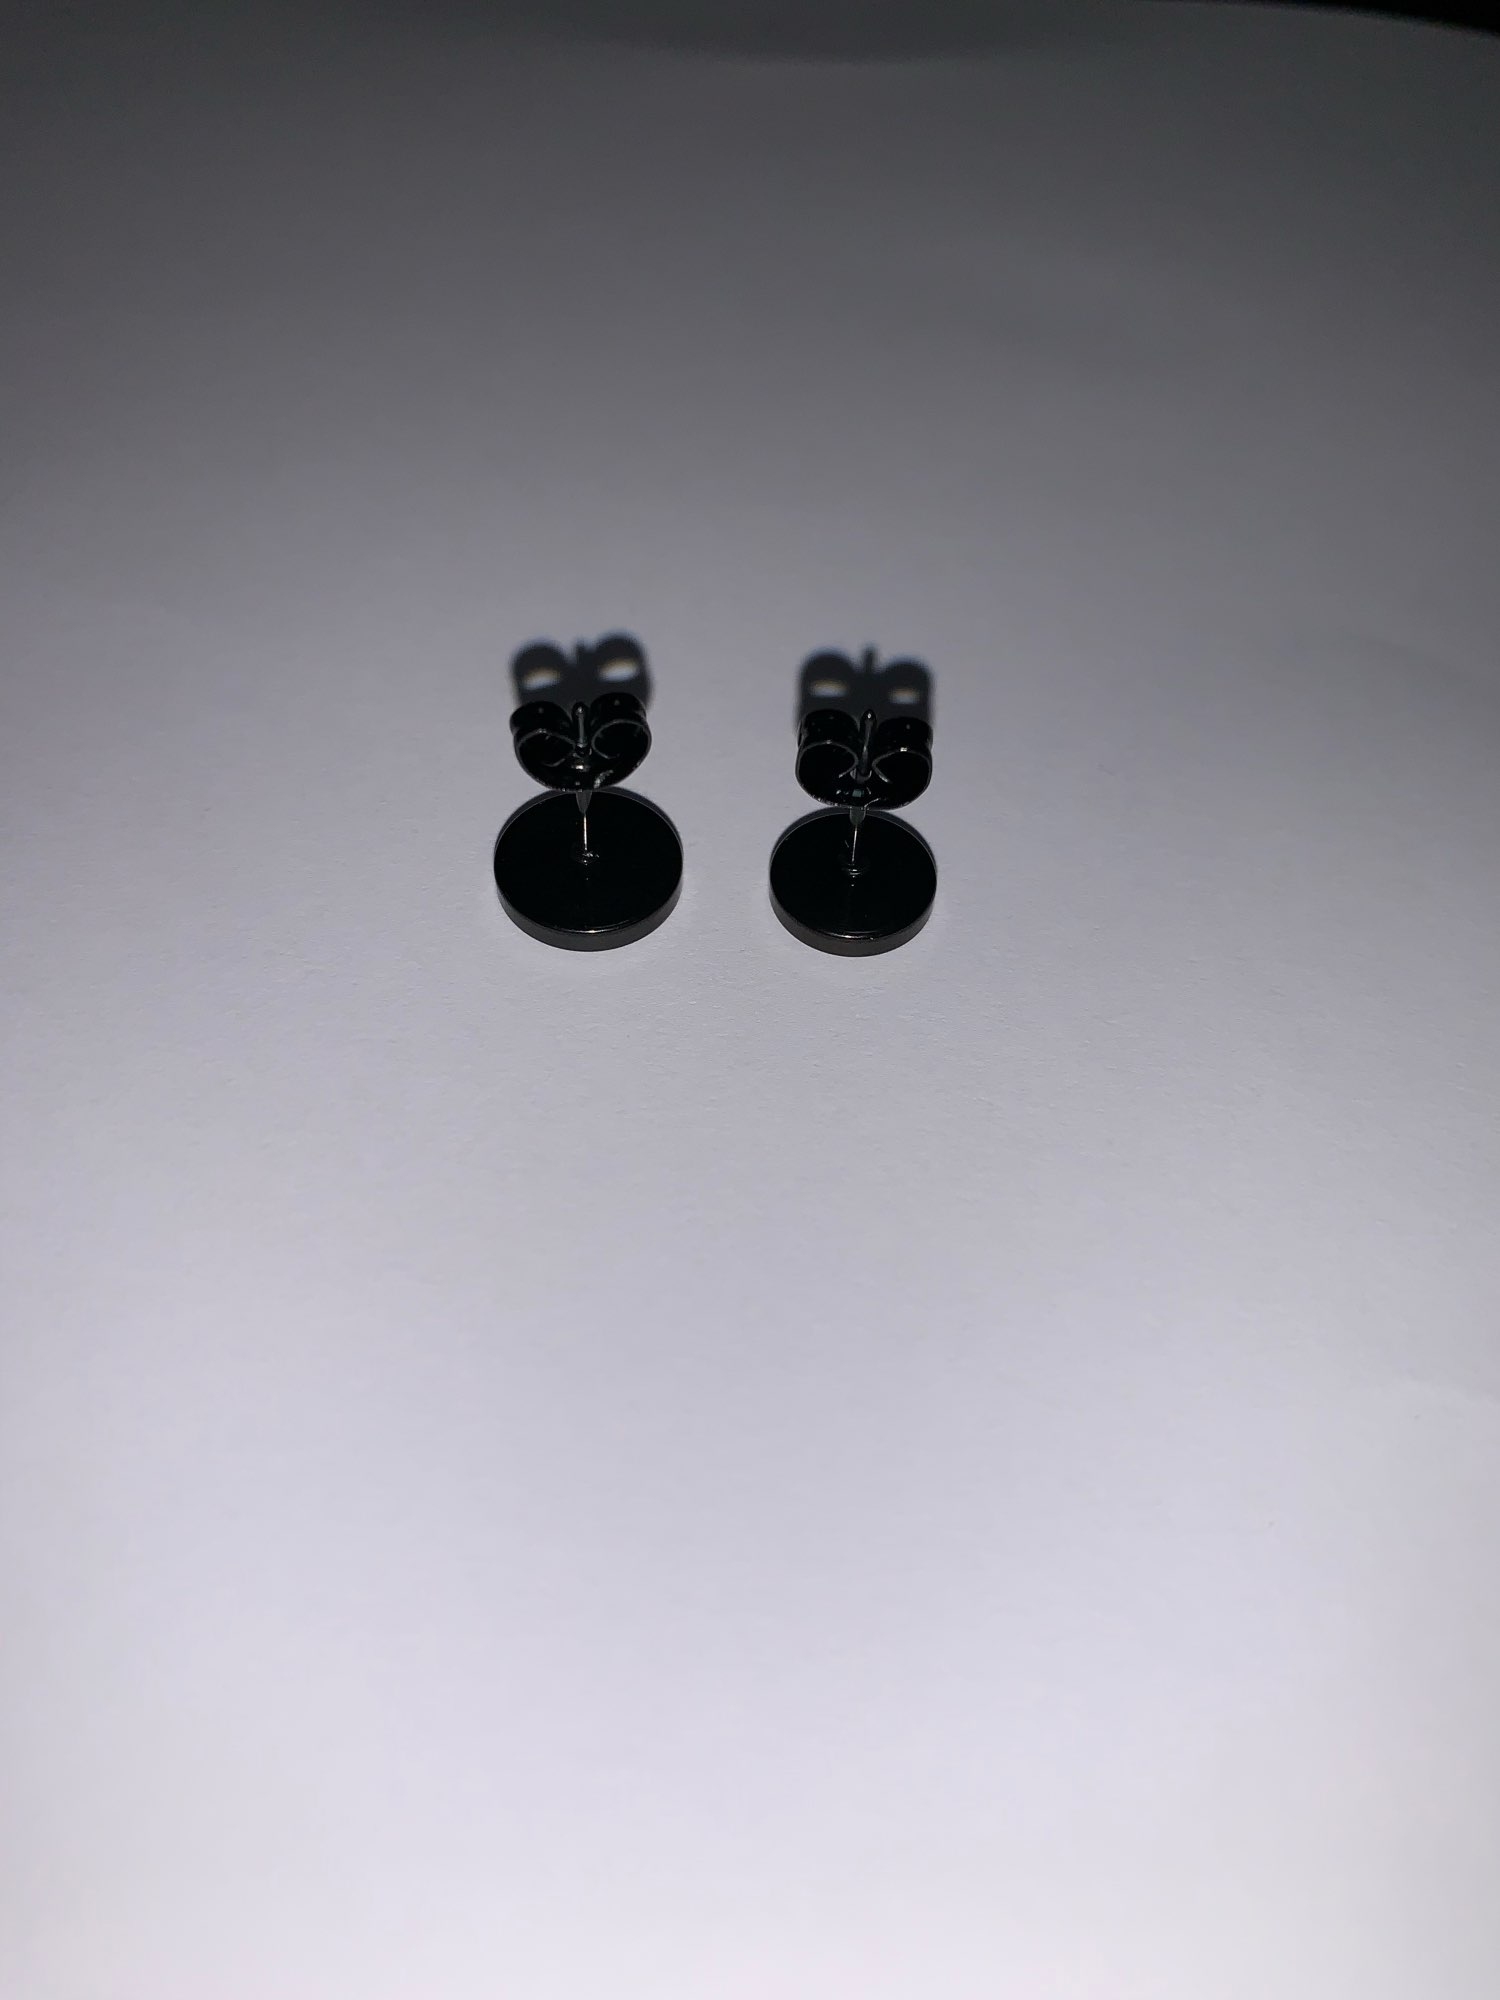 Punk Black Multiple Styles Stainless/Titanium Earrings photo review